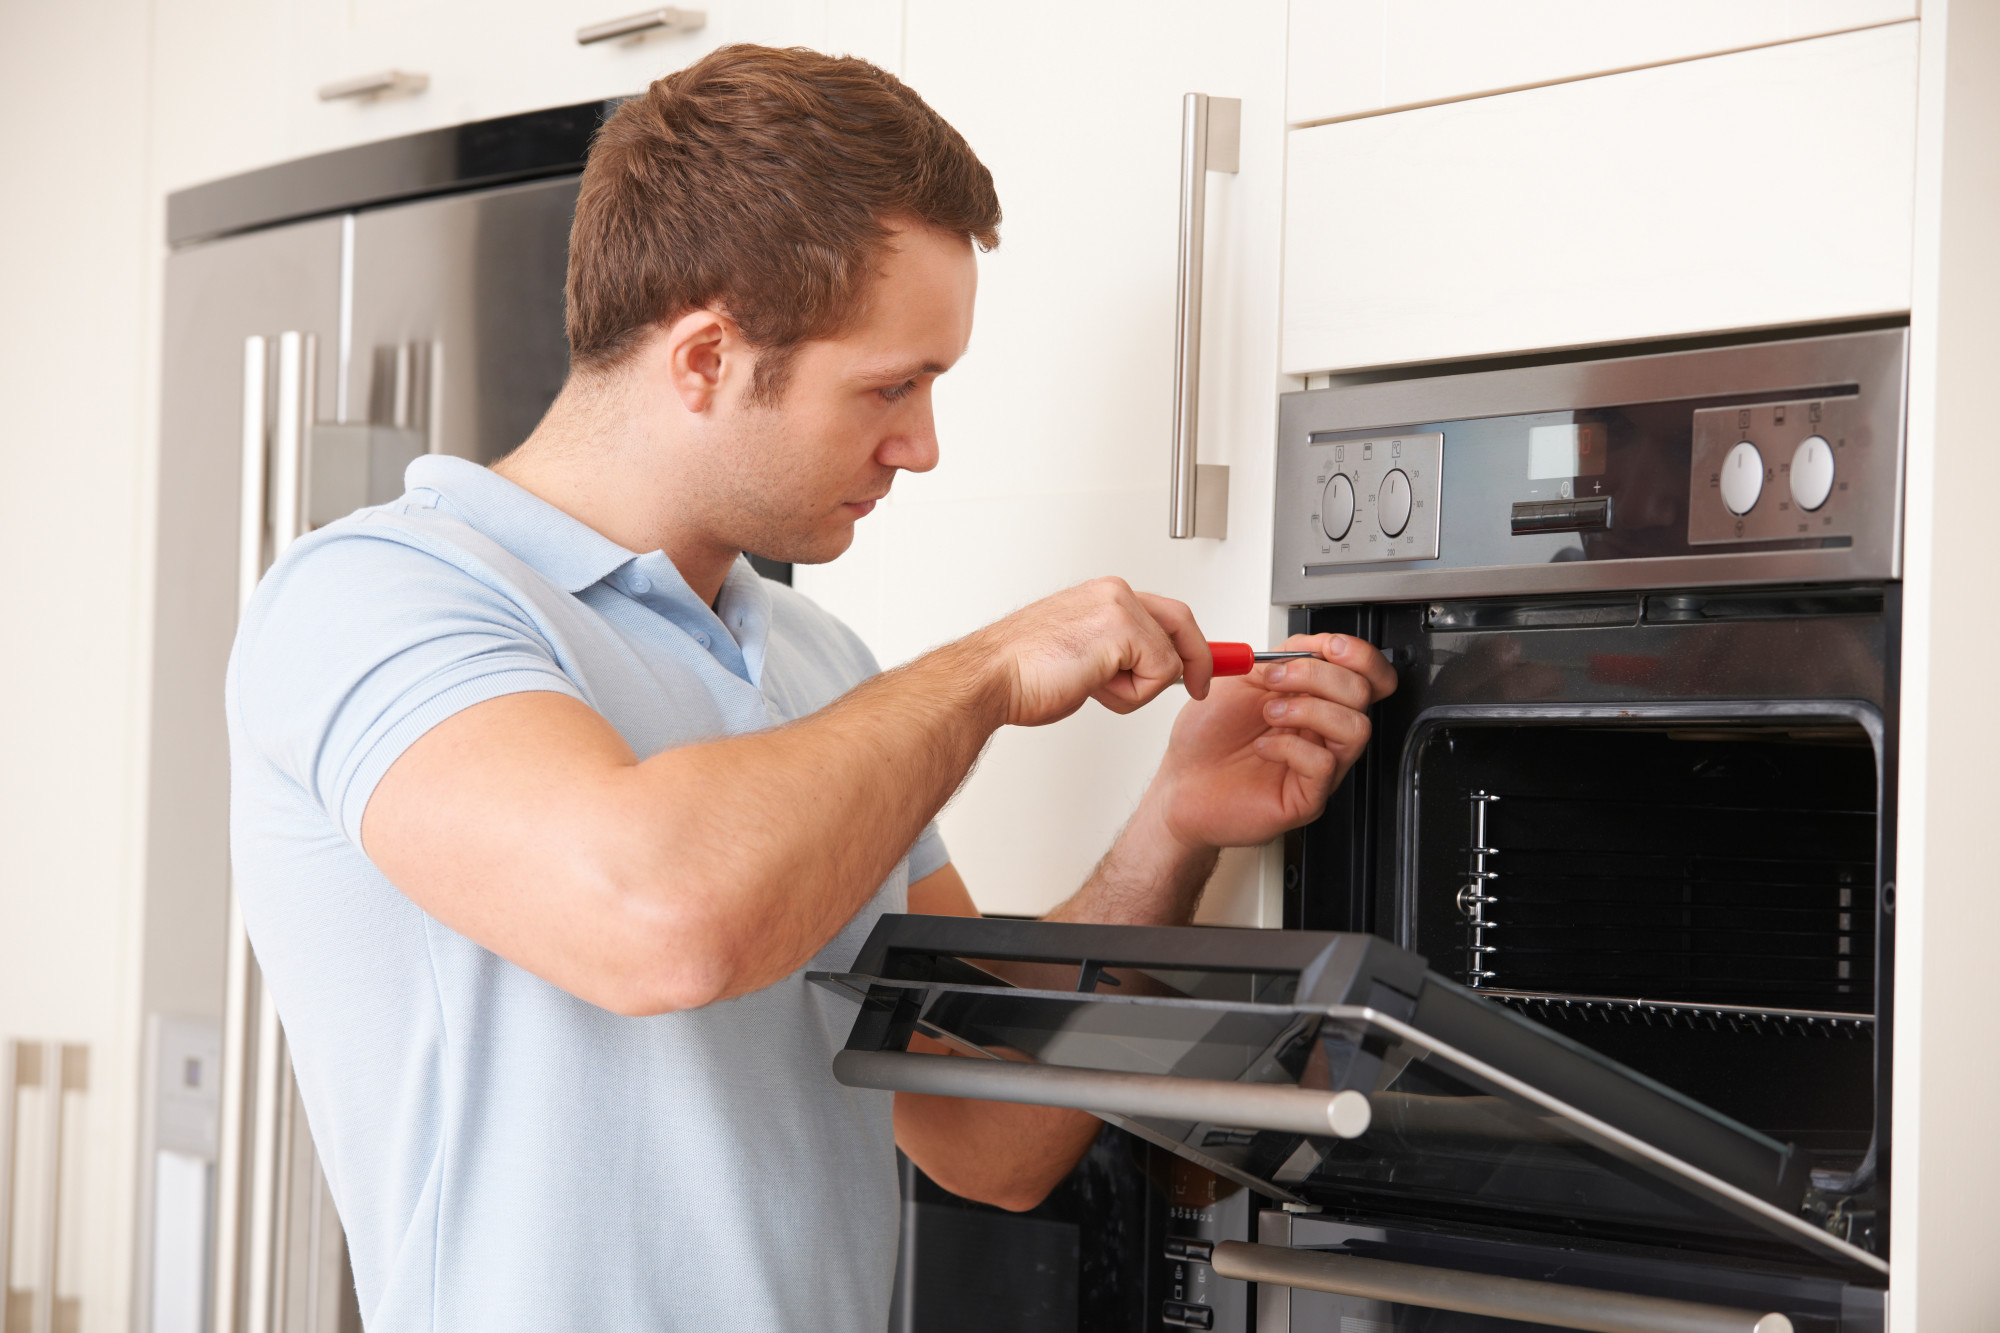 5 DIY Appliance Repairs and How to Know When to Call the Pros